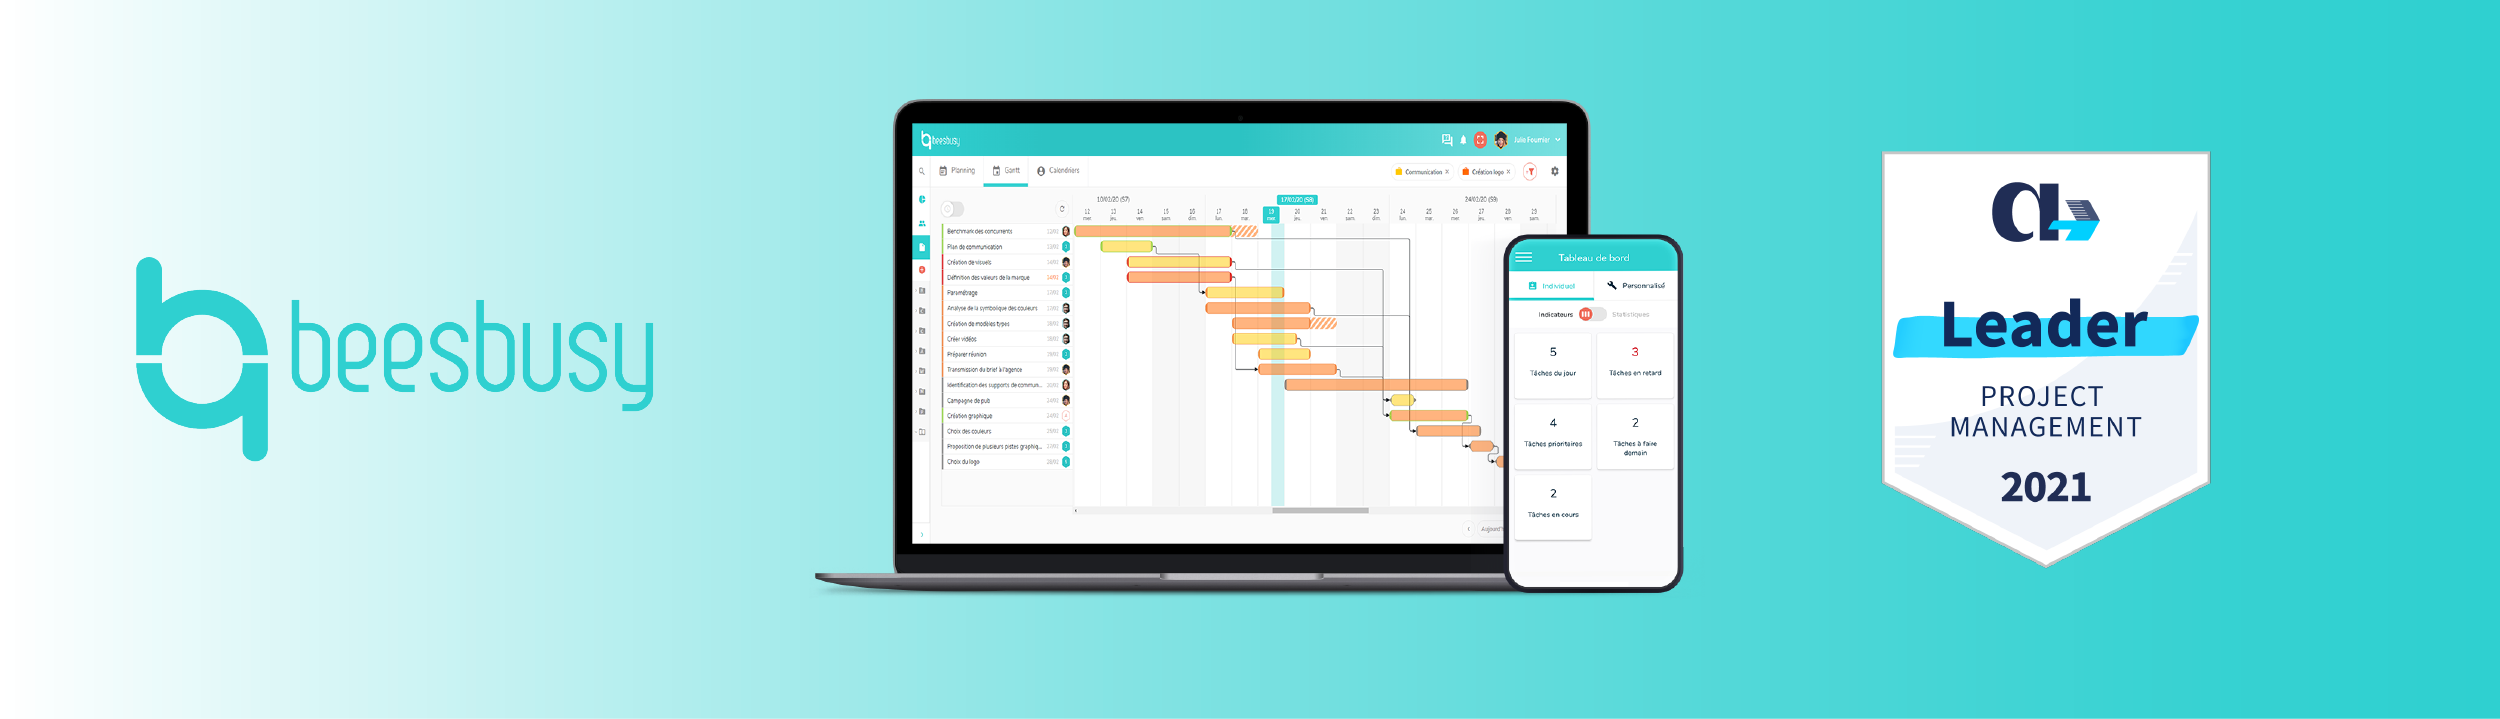 Review Beesbusy: Easy to use and really powerful - Appvizer